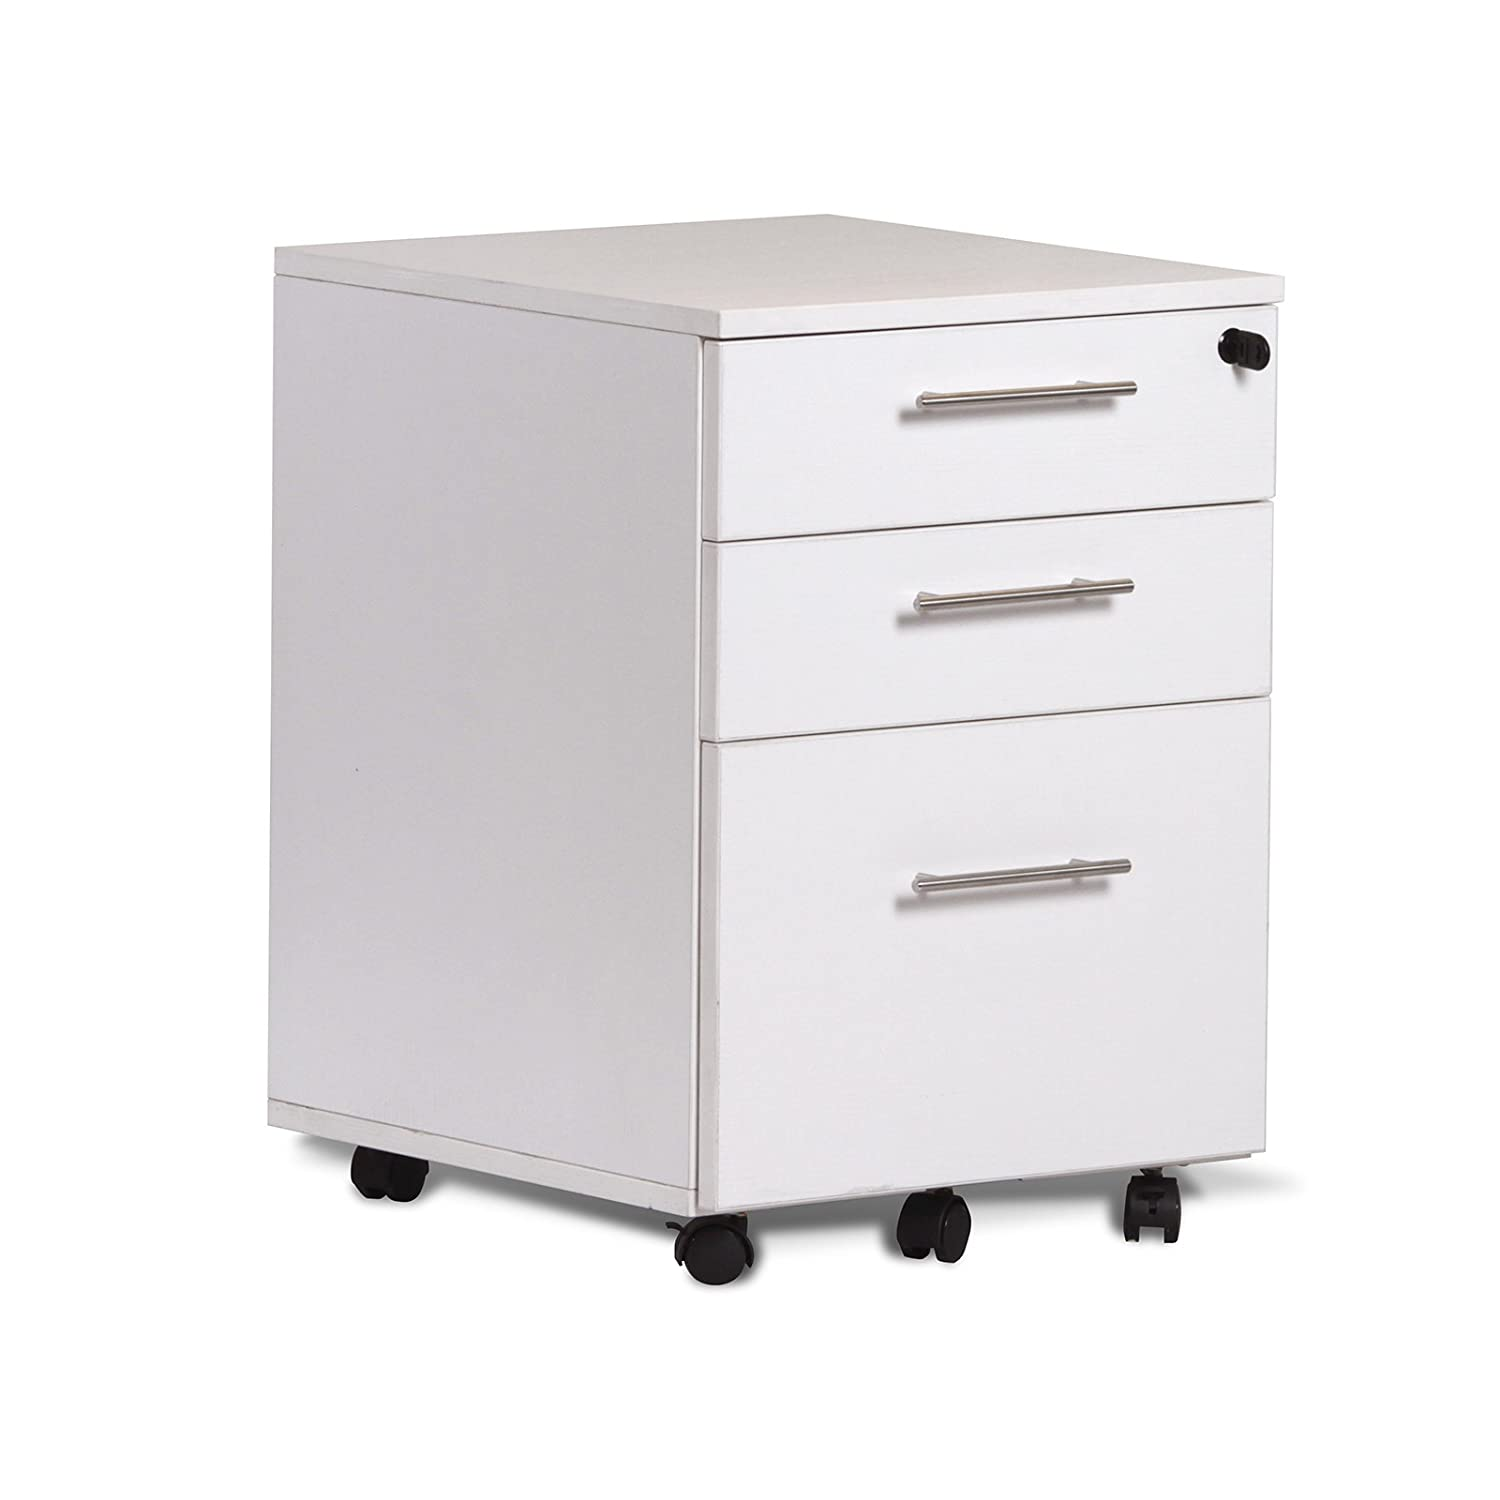 Unique Furniture 119203-ESP 3 Drawer Mobile File Cabinet Pedestal, Espresso